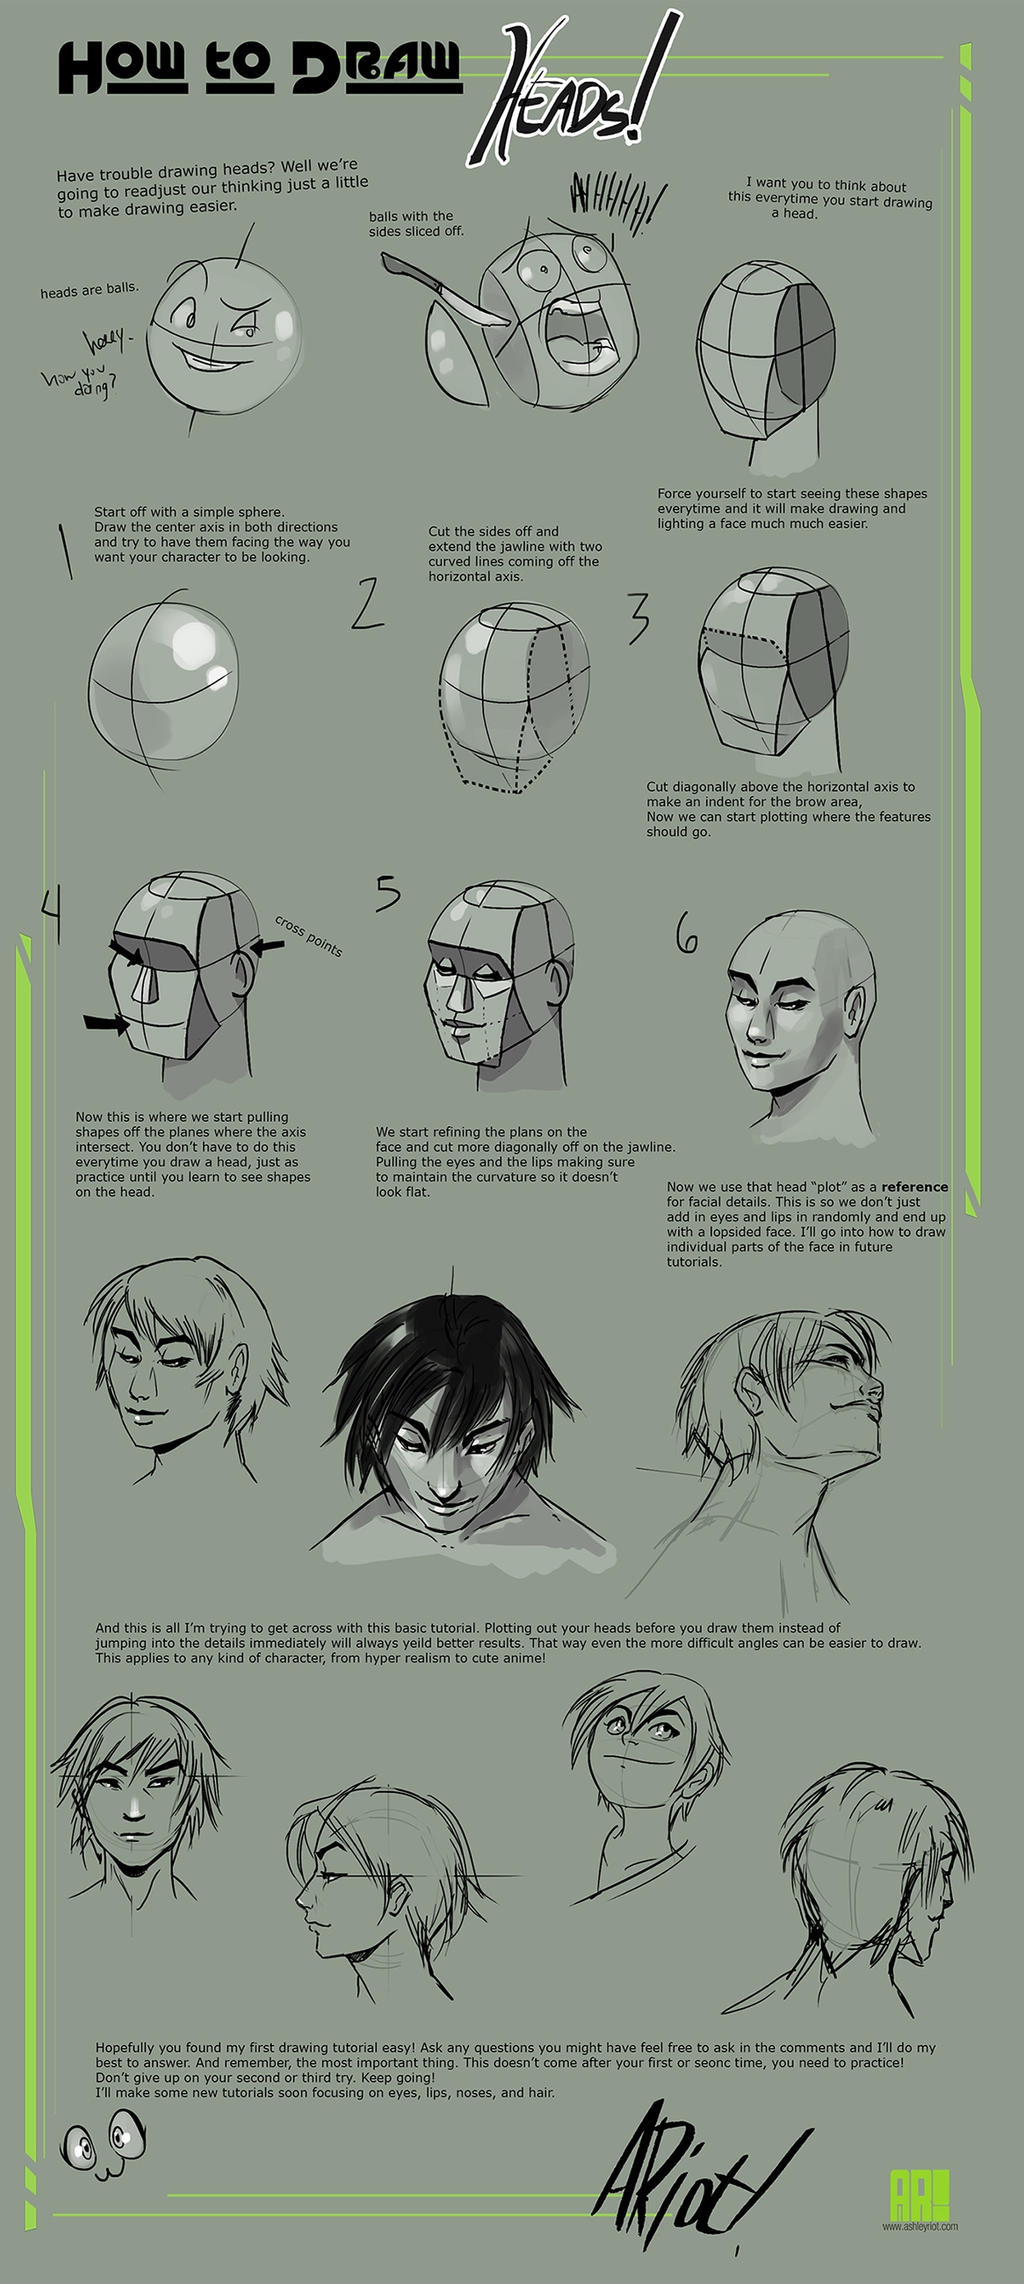 How to draw Heads by JocelynAda